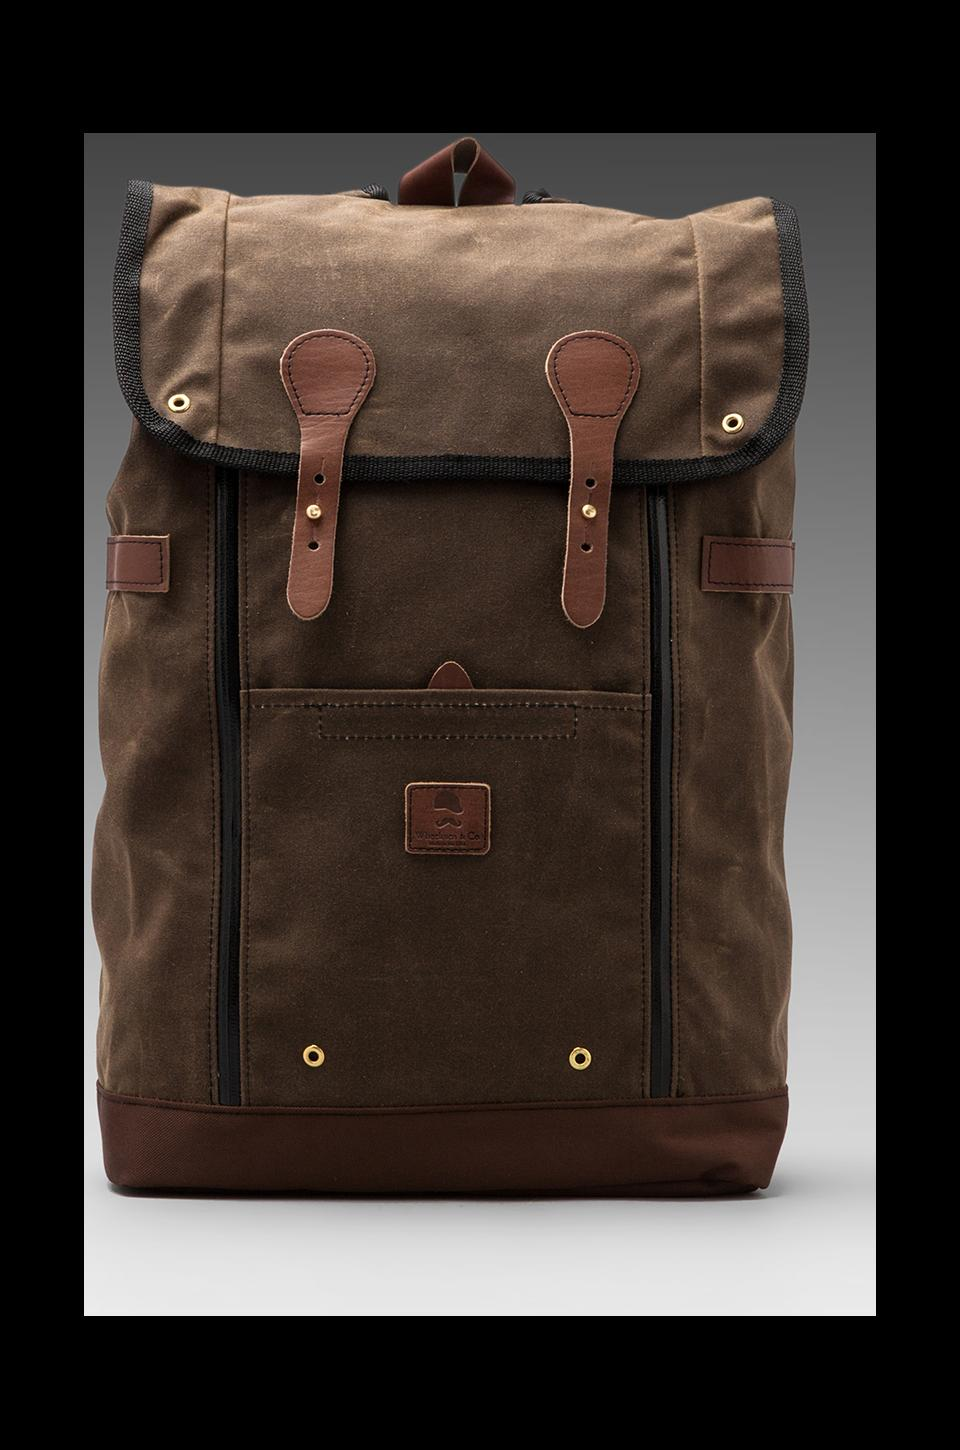 Wheelmen & Co. Babylon Backpack in Brown